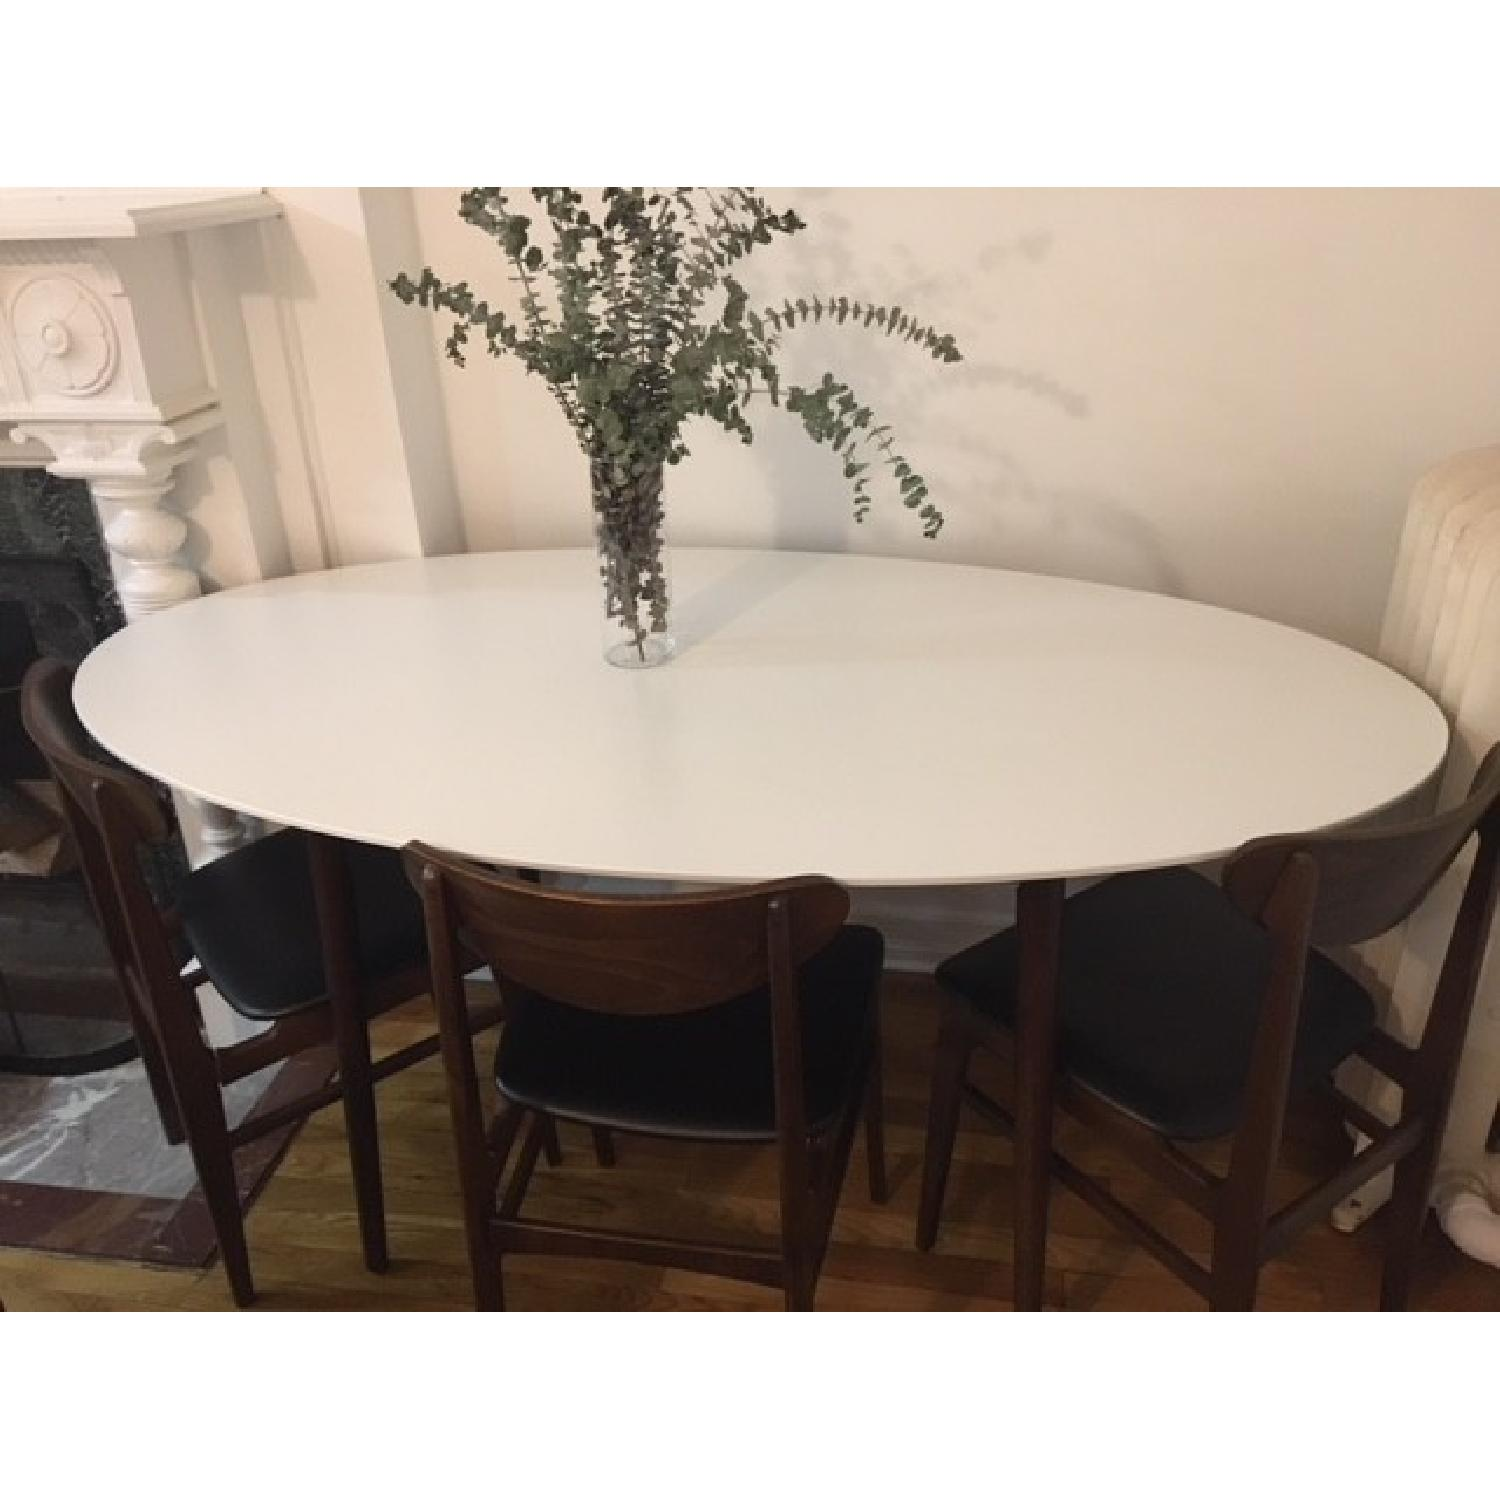 ... White Oval Dining Table 1